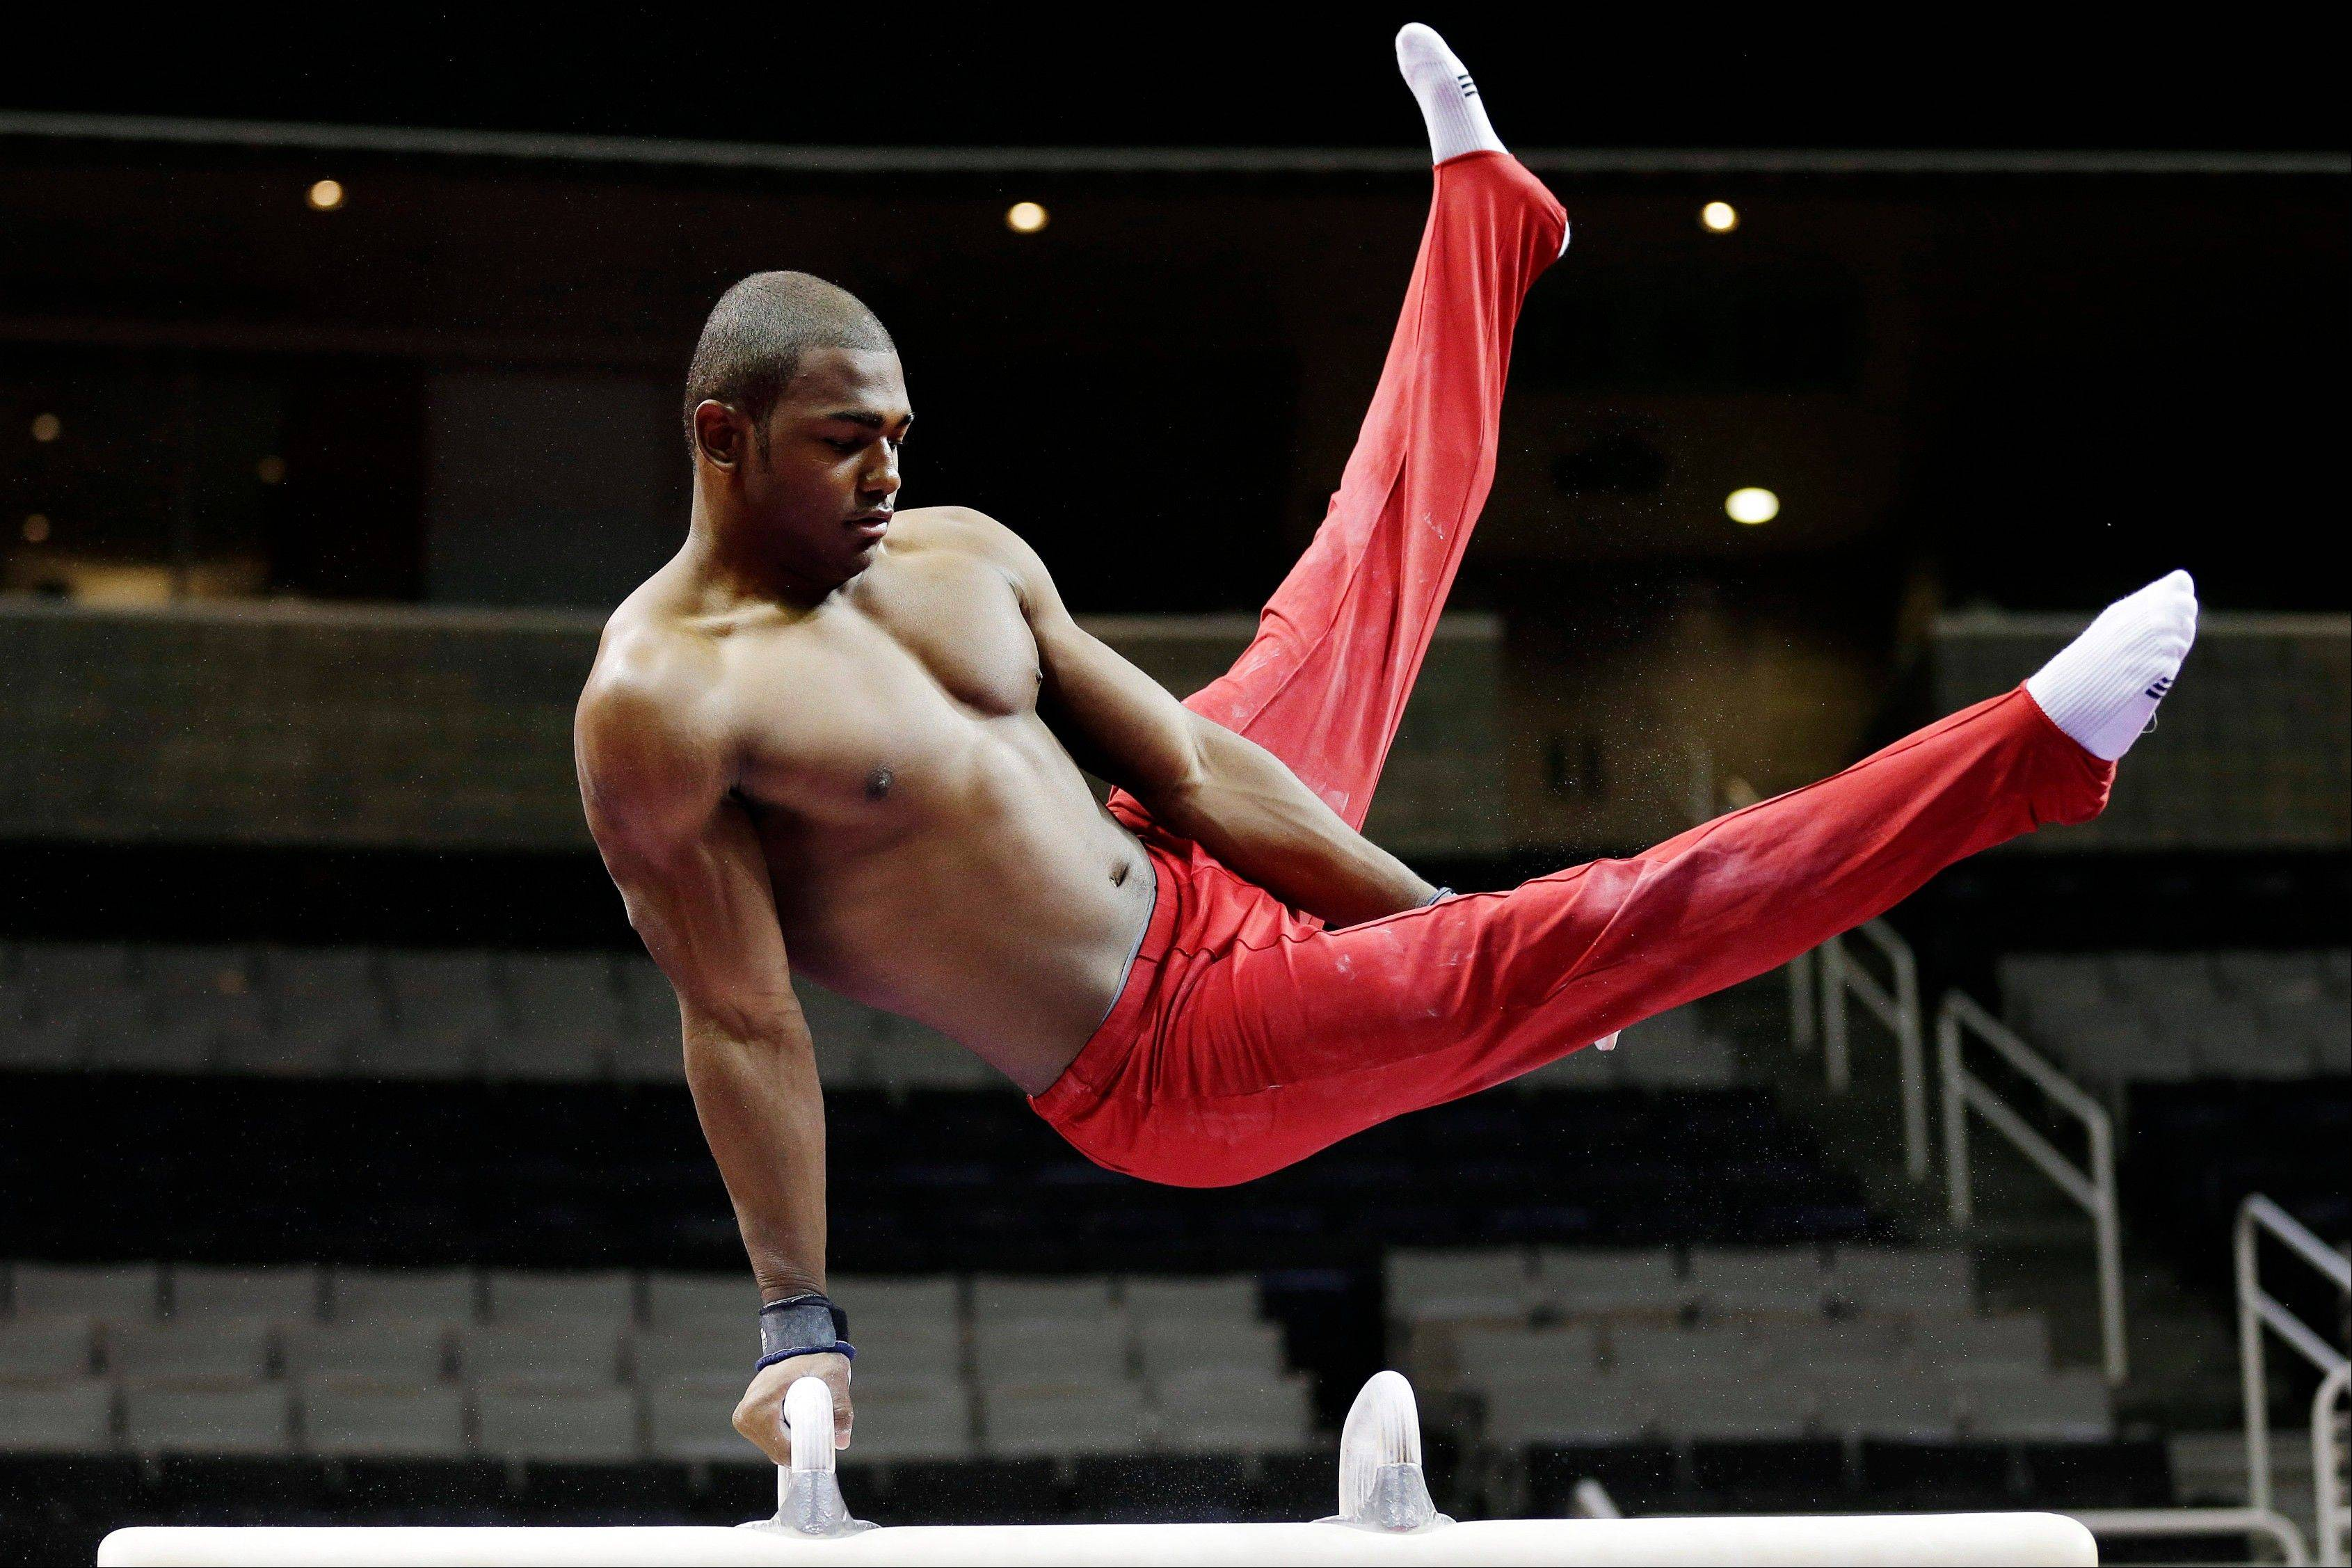 John Orozco trains on the pommel horse during practice for the U.S. Olympic gymnastics trials Wednesday in San Jose, Calif.